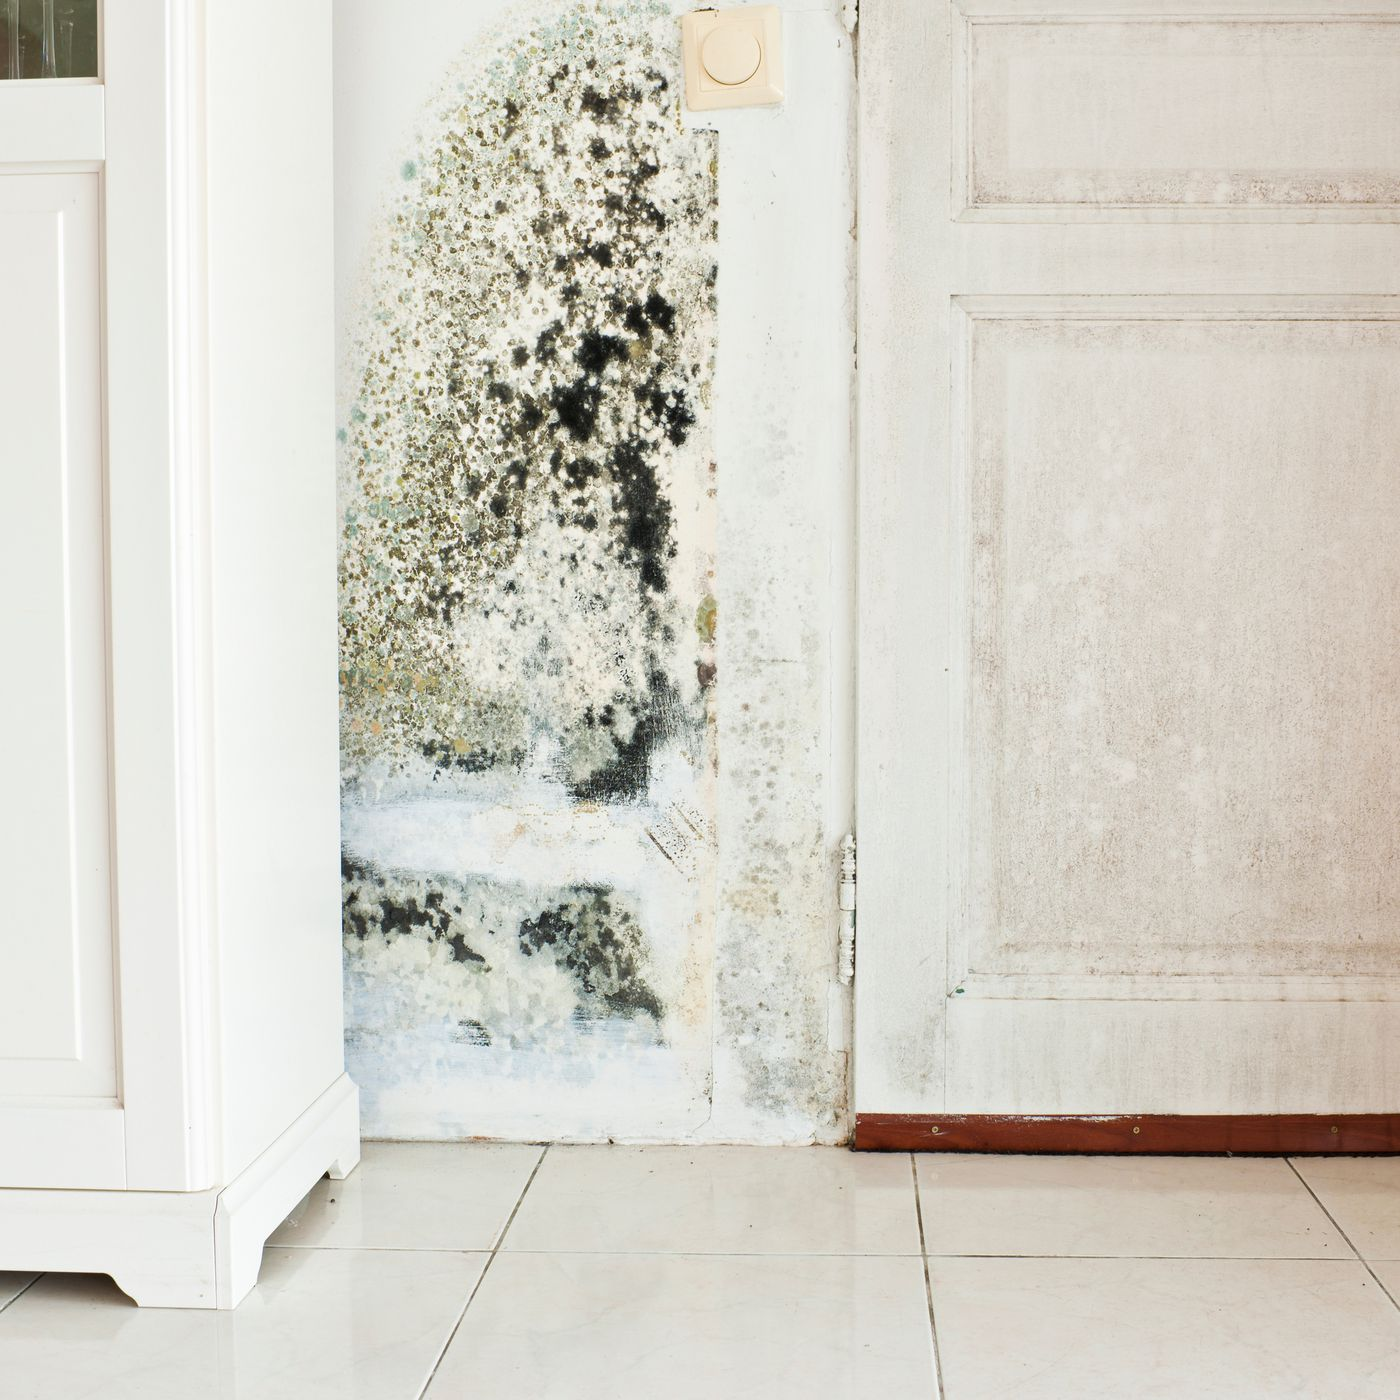 How To Test For Black Mold This Old House